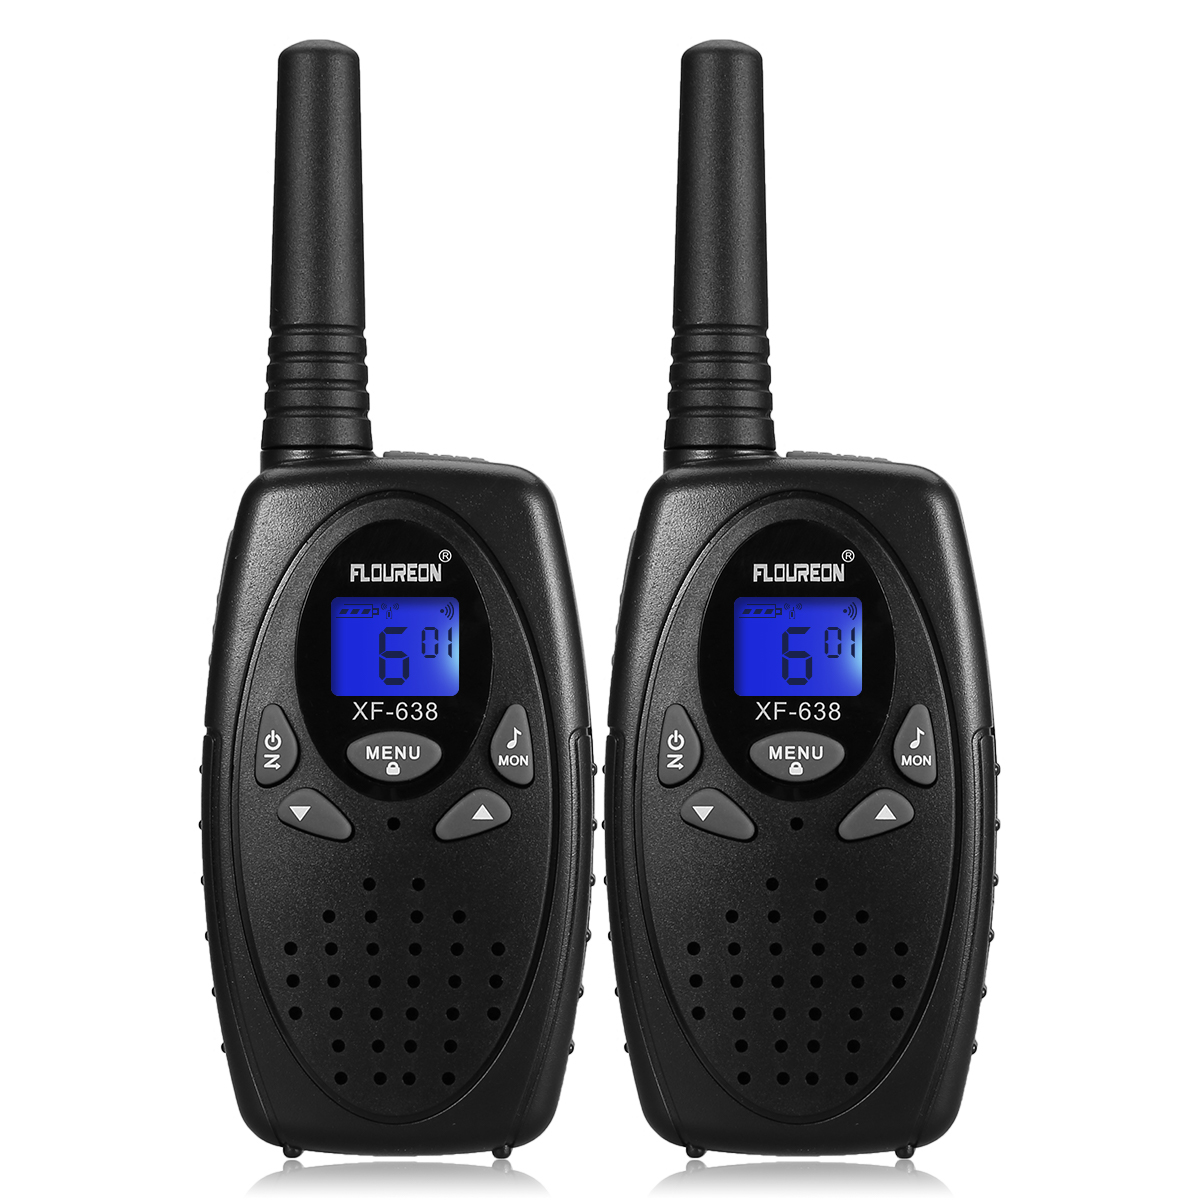 FLOUREON 22 Channel Twin Walkie Talkies FRS/GMRS 462-467MHZ 2-Way Radio 3KM Interphone Black  US  2只装 - BLACK